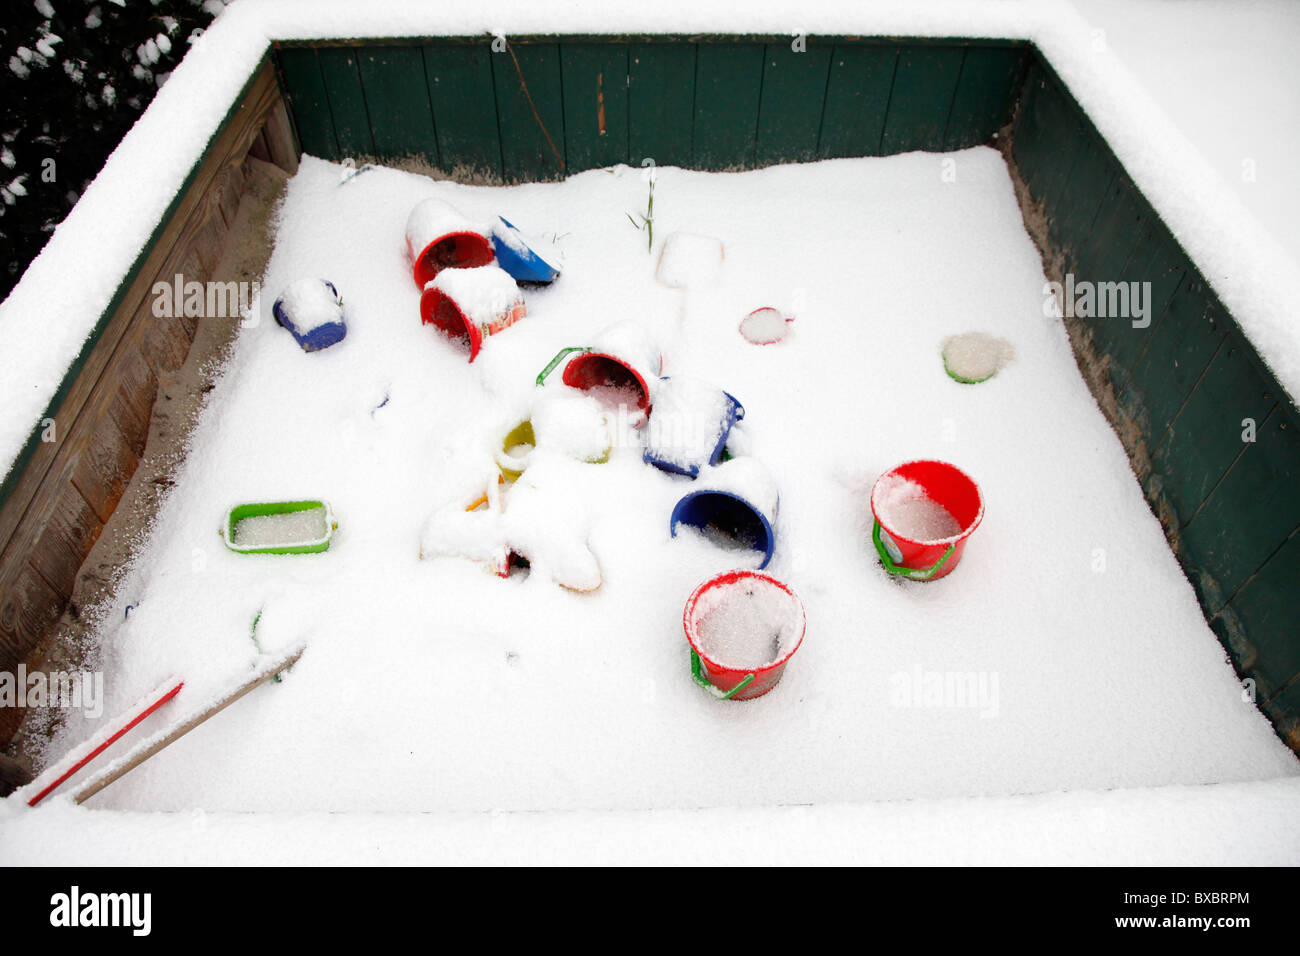 Children's sandbox, toys, covered with snow. - Stock Image